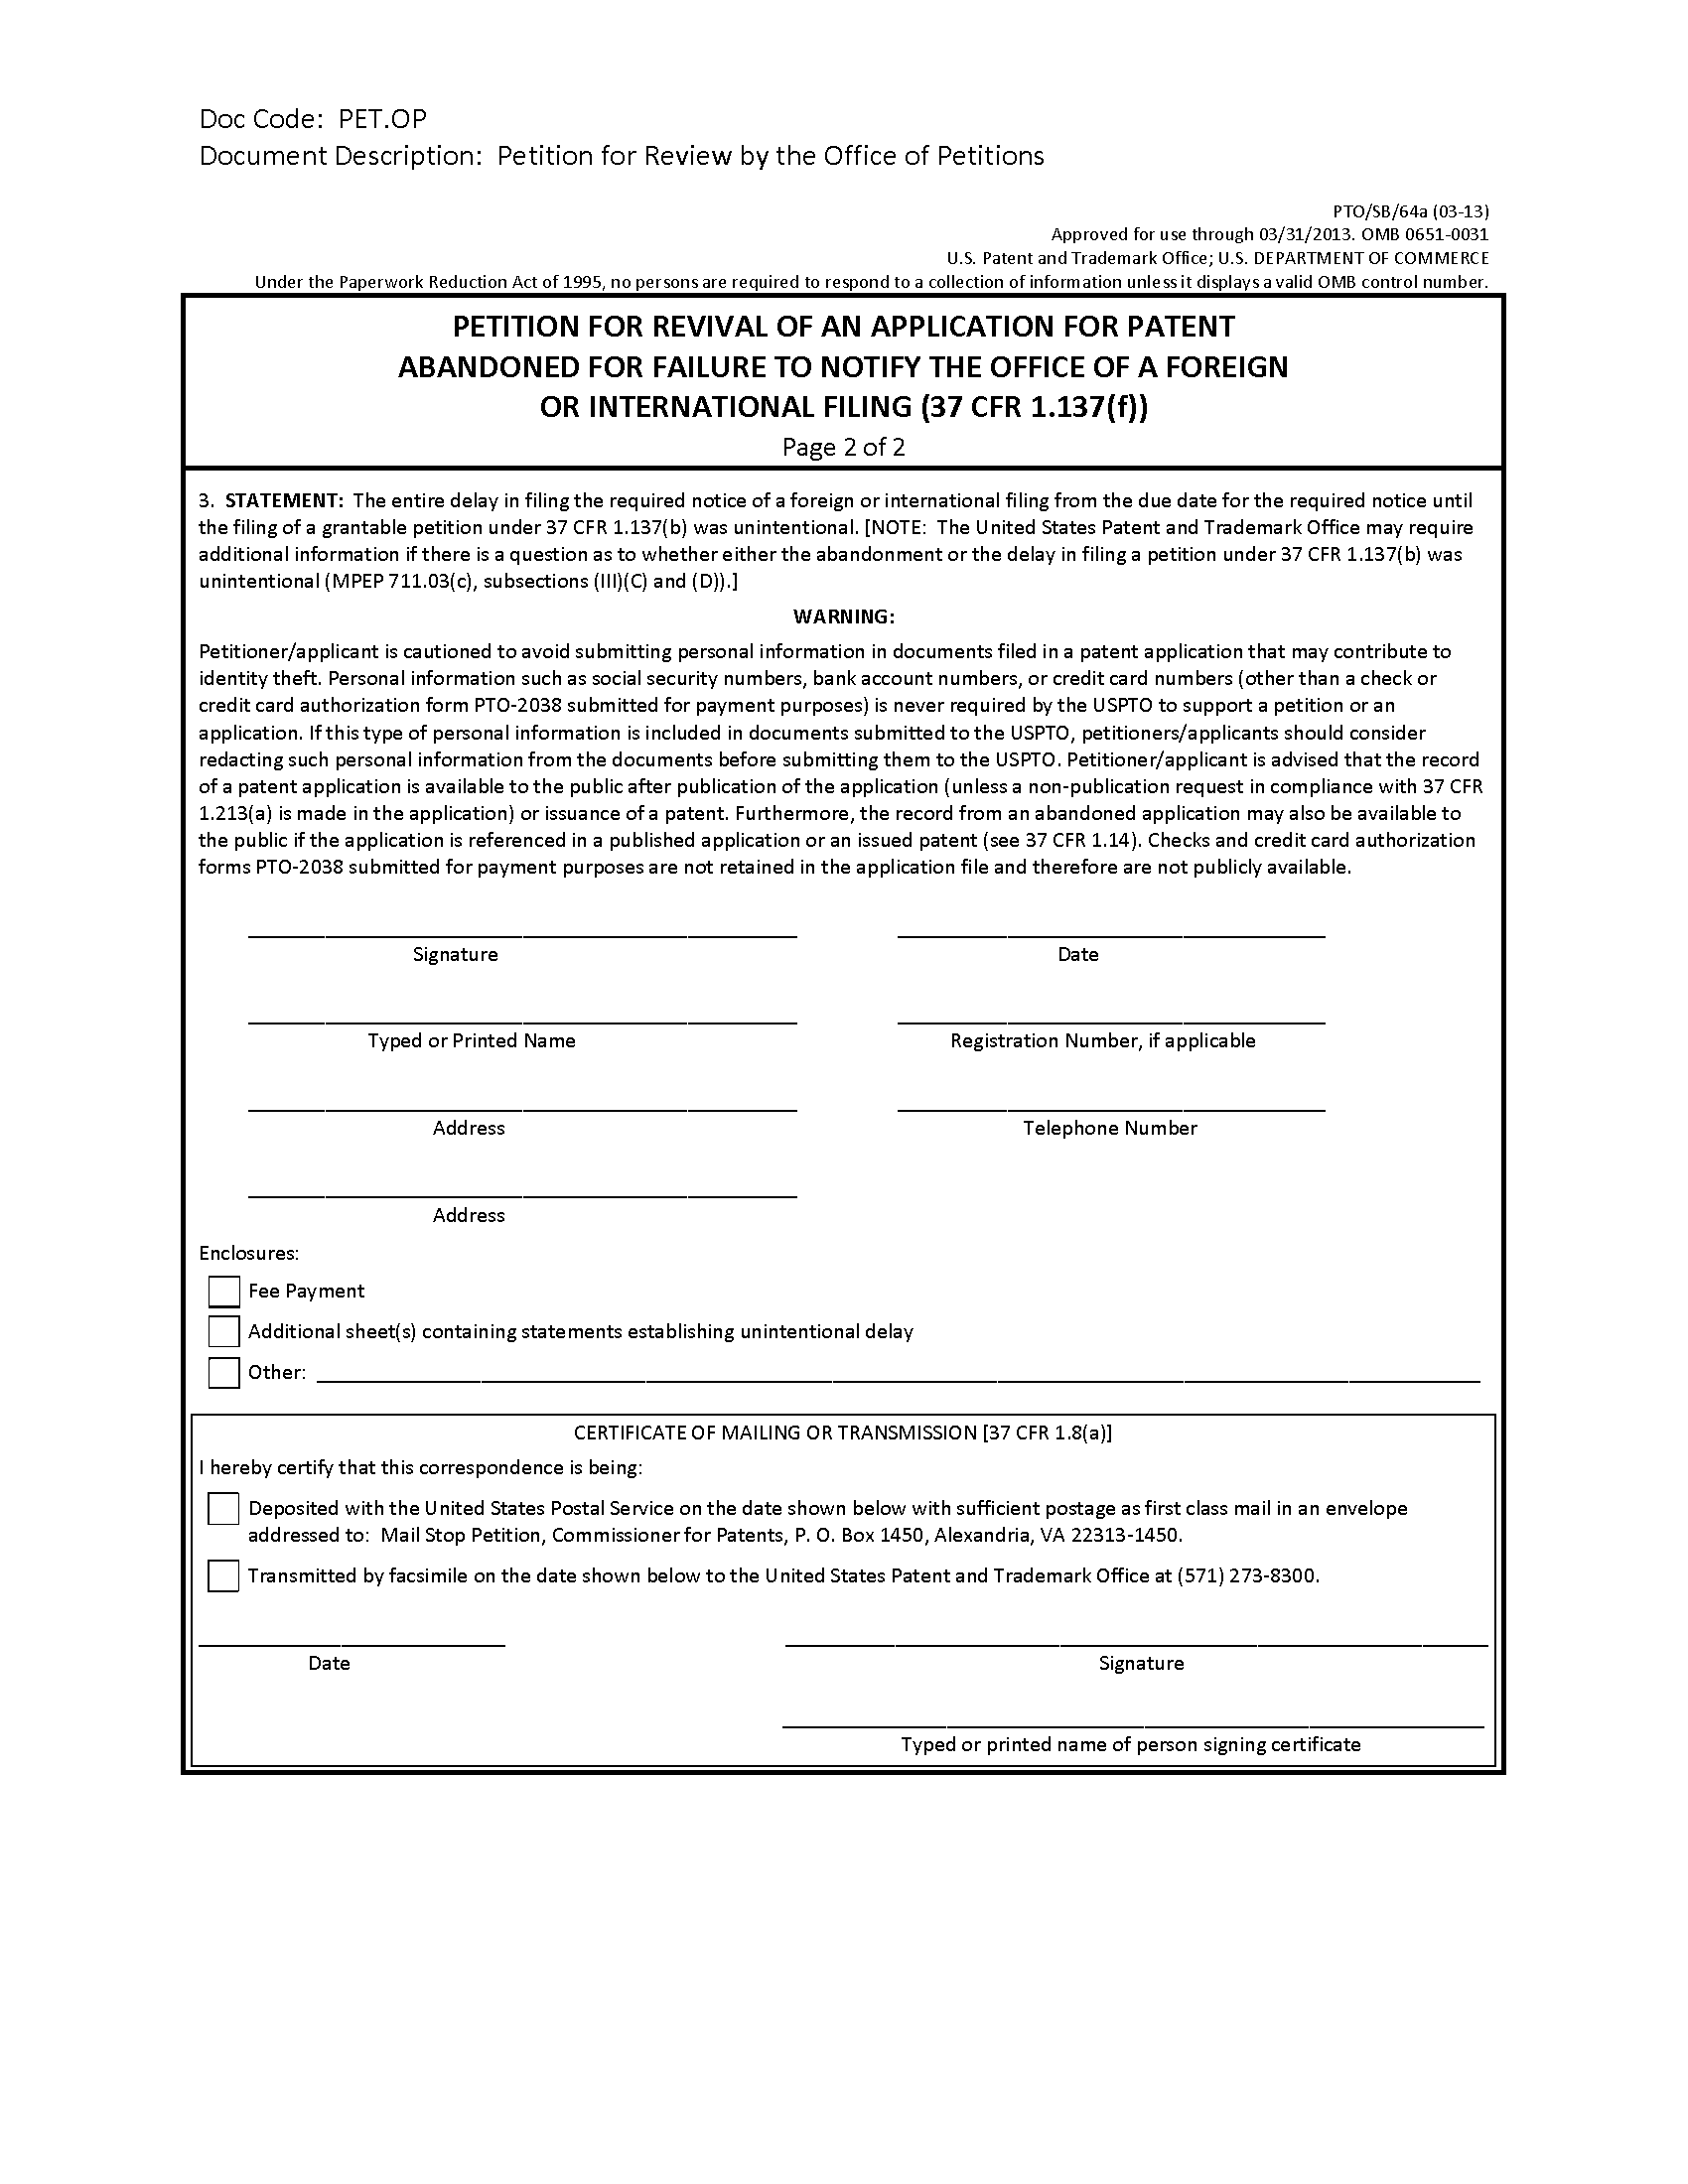 Form PTO/SB/64a Petition For Revival Of An Application For Patent Abandoned  For